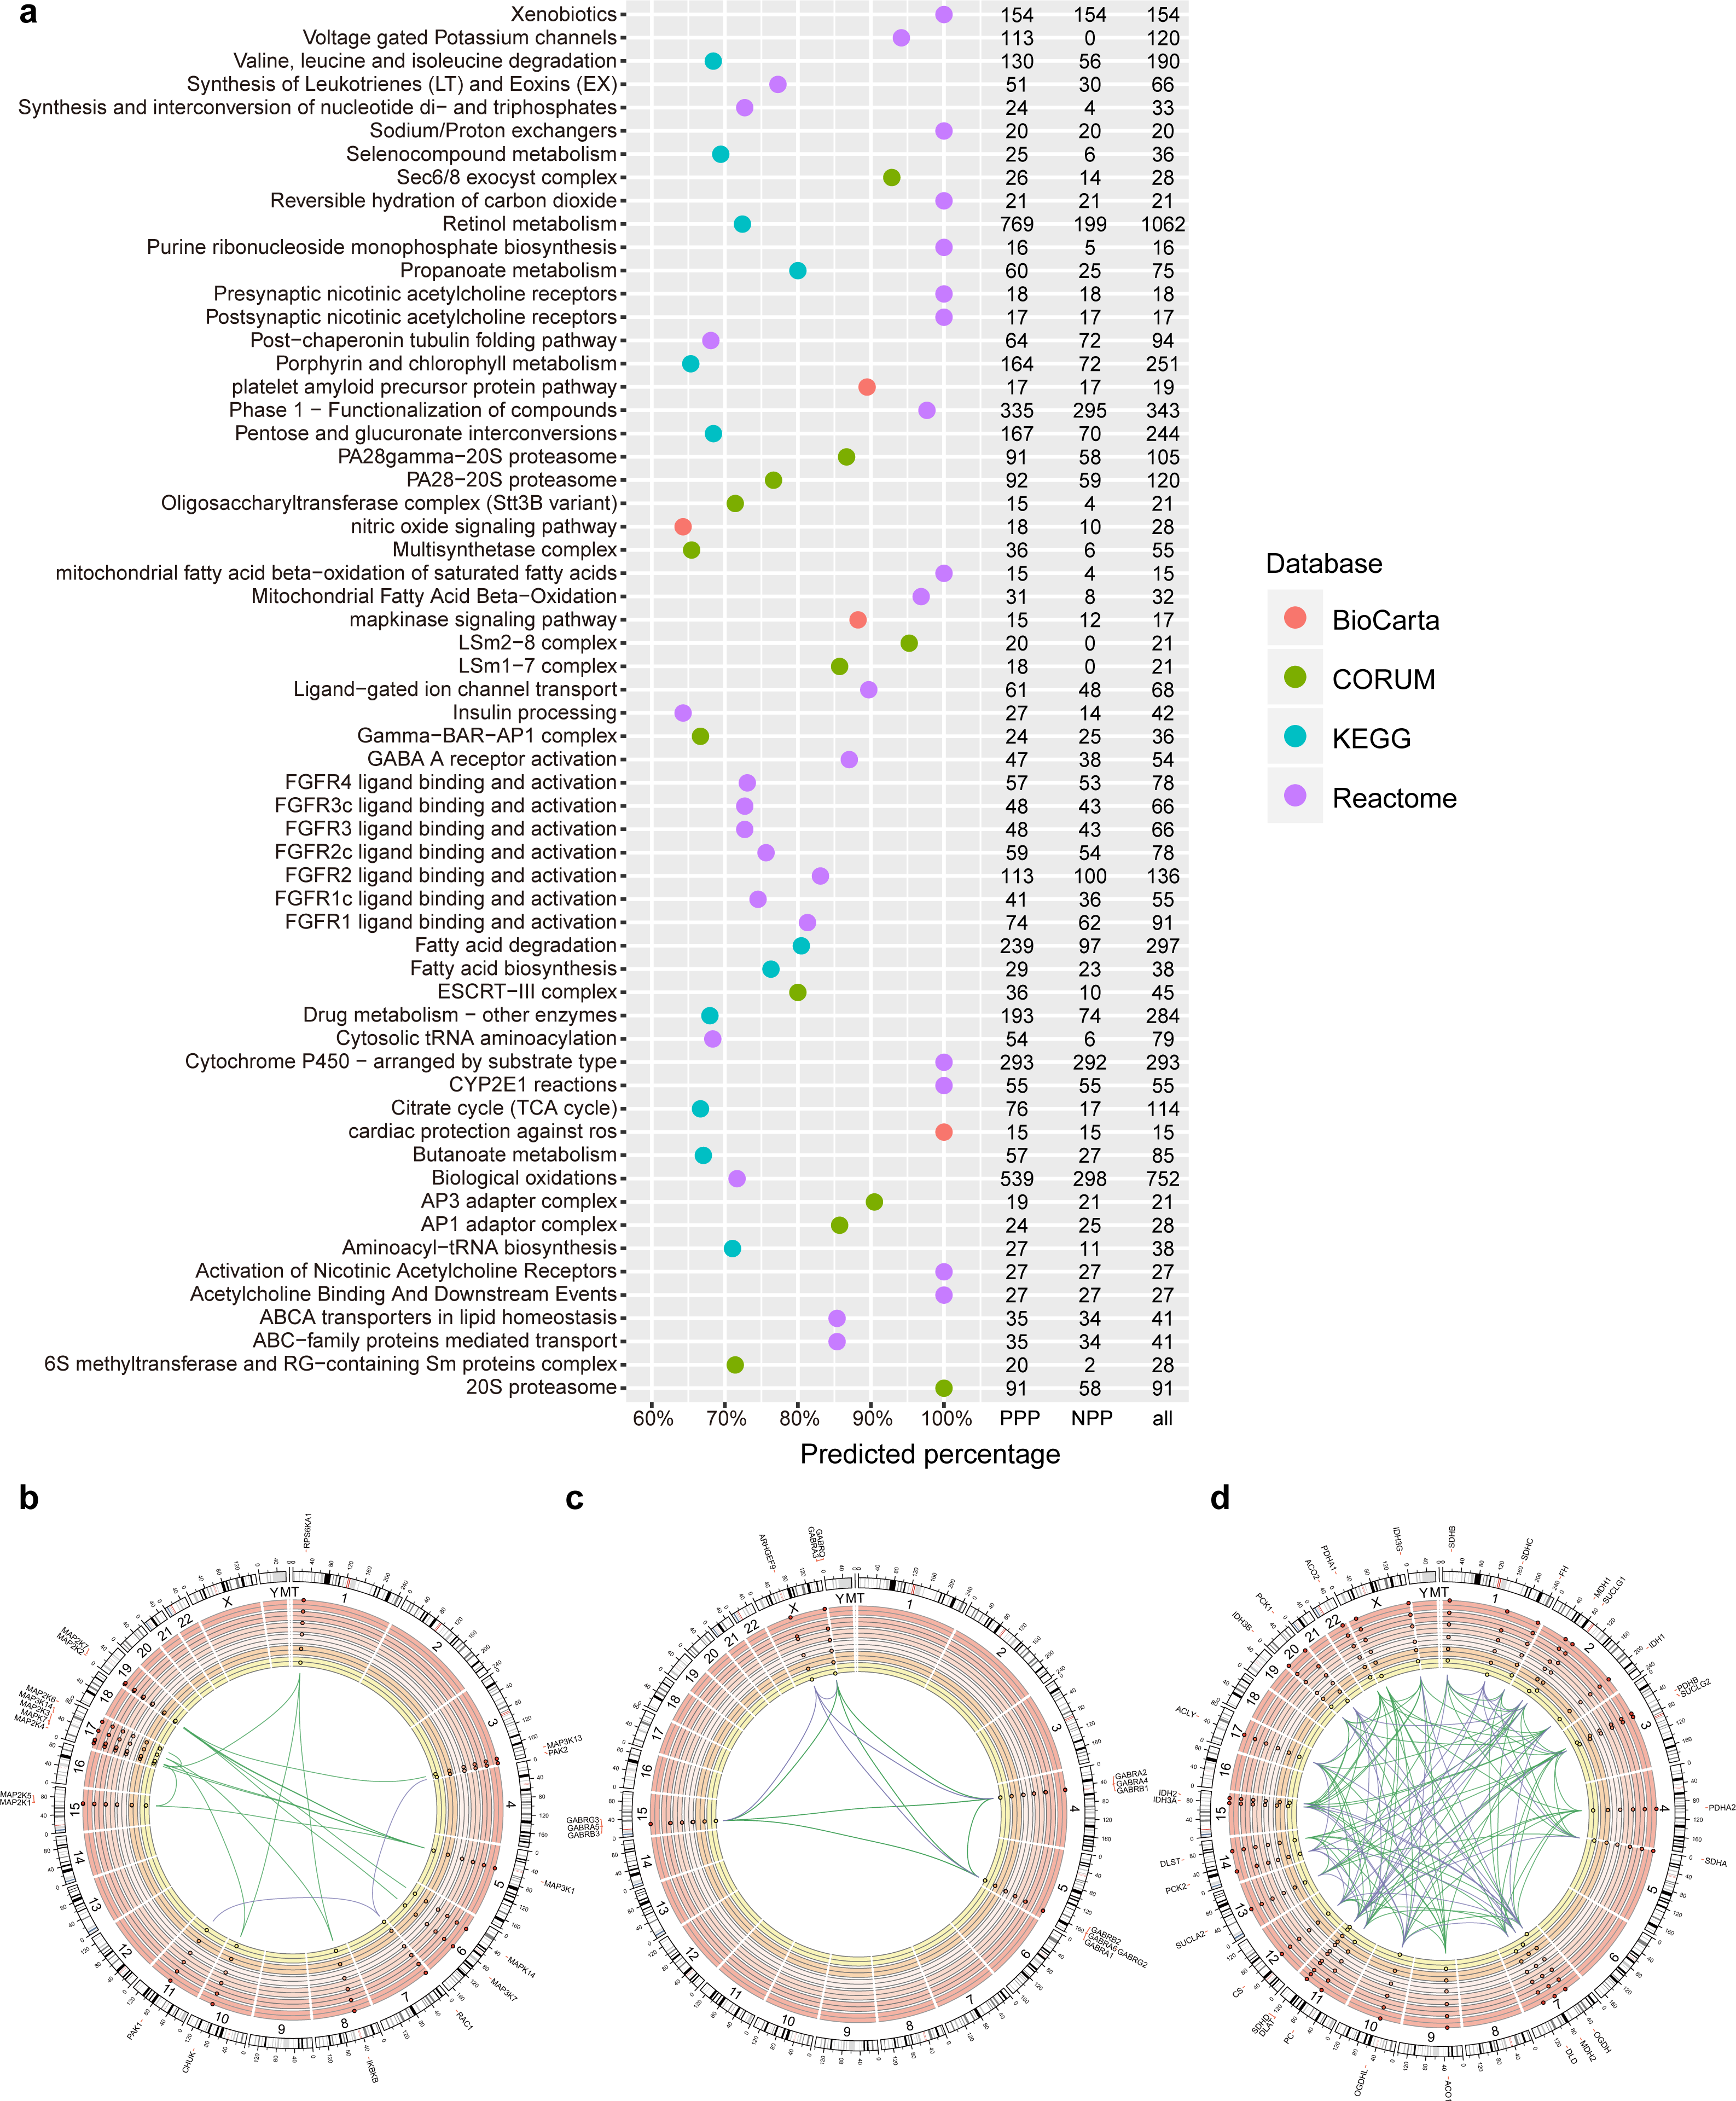 PrePhyloPro: phylogenetic profile-based prediction of whole